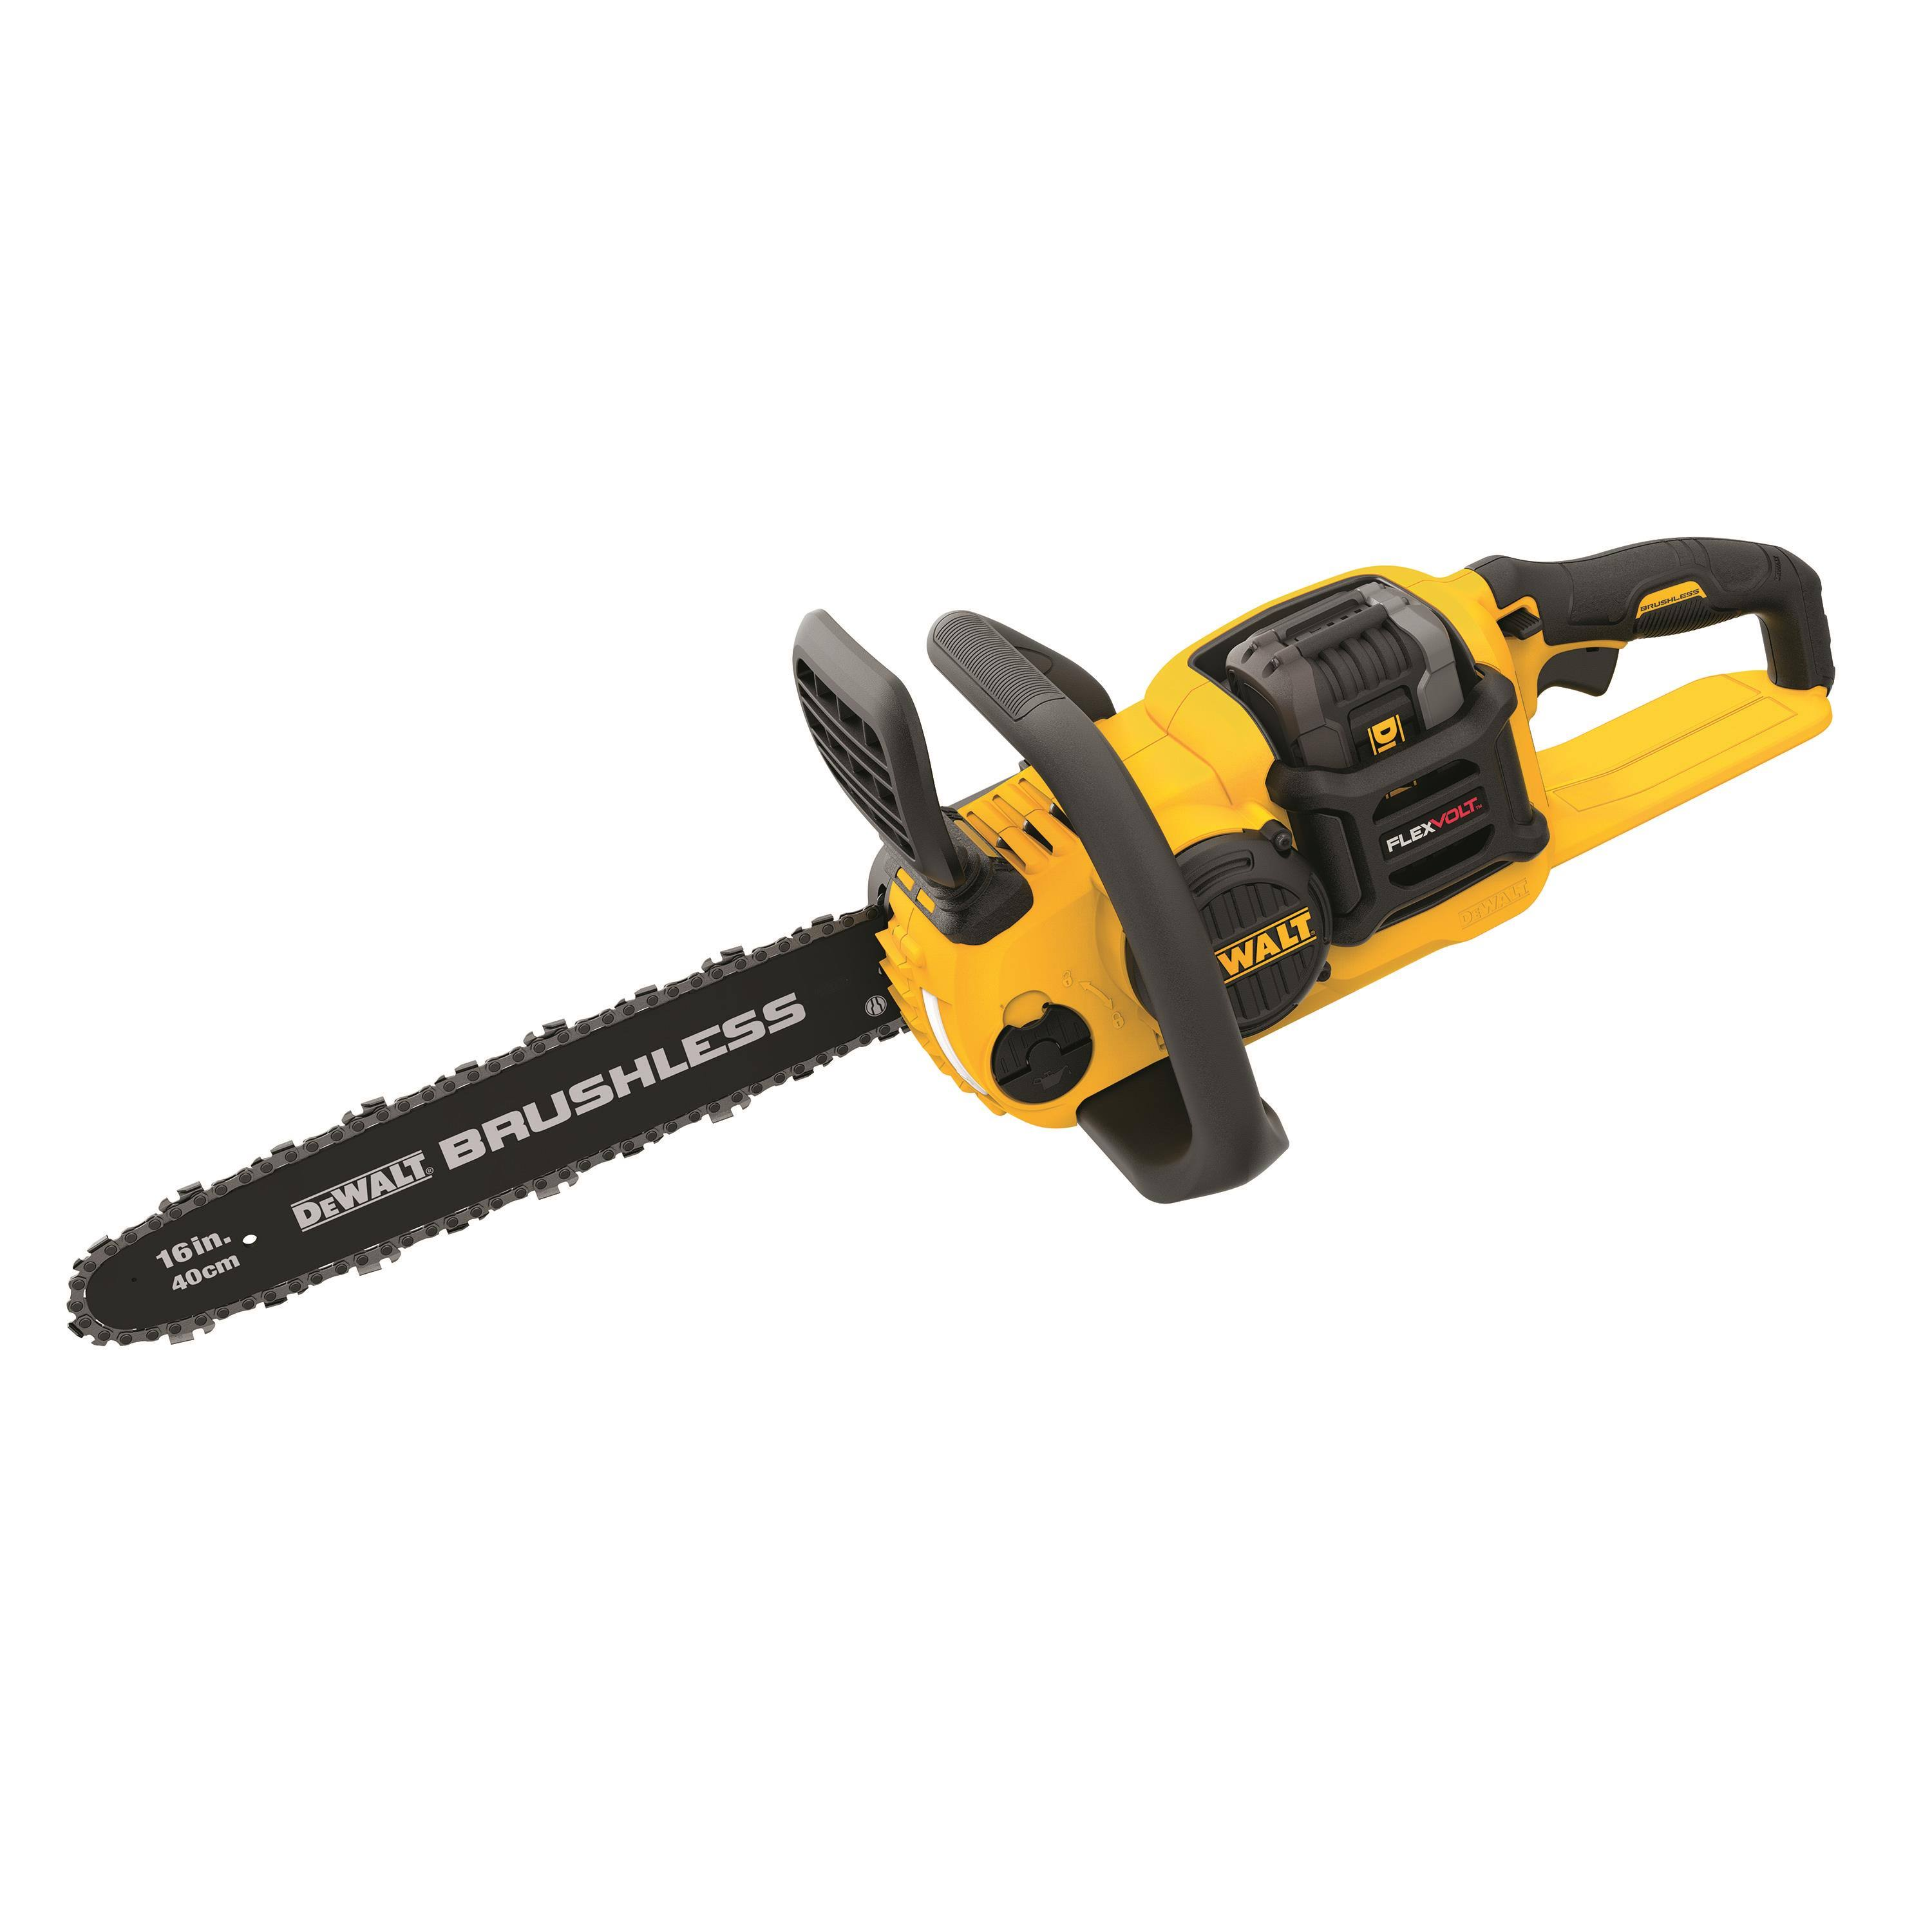 DEWALT Flexvolt Brushless Chainsaw - Yellow, 60v, 16""